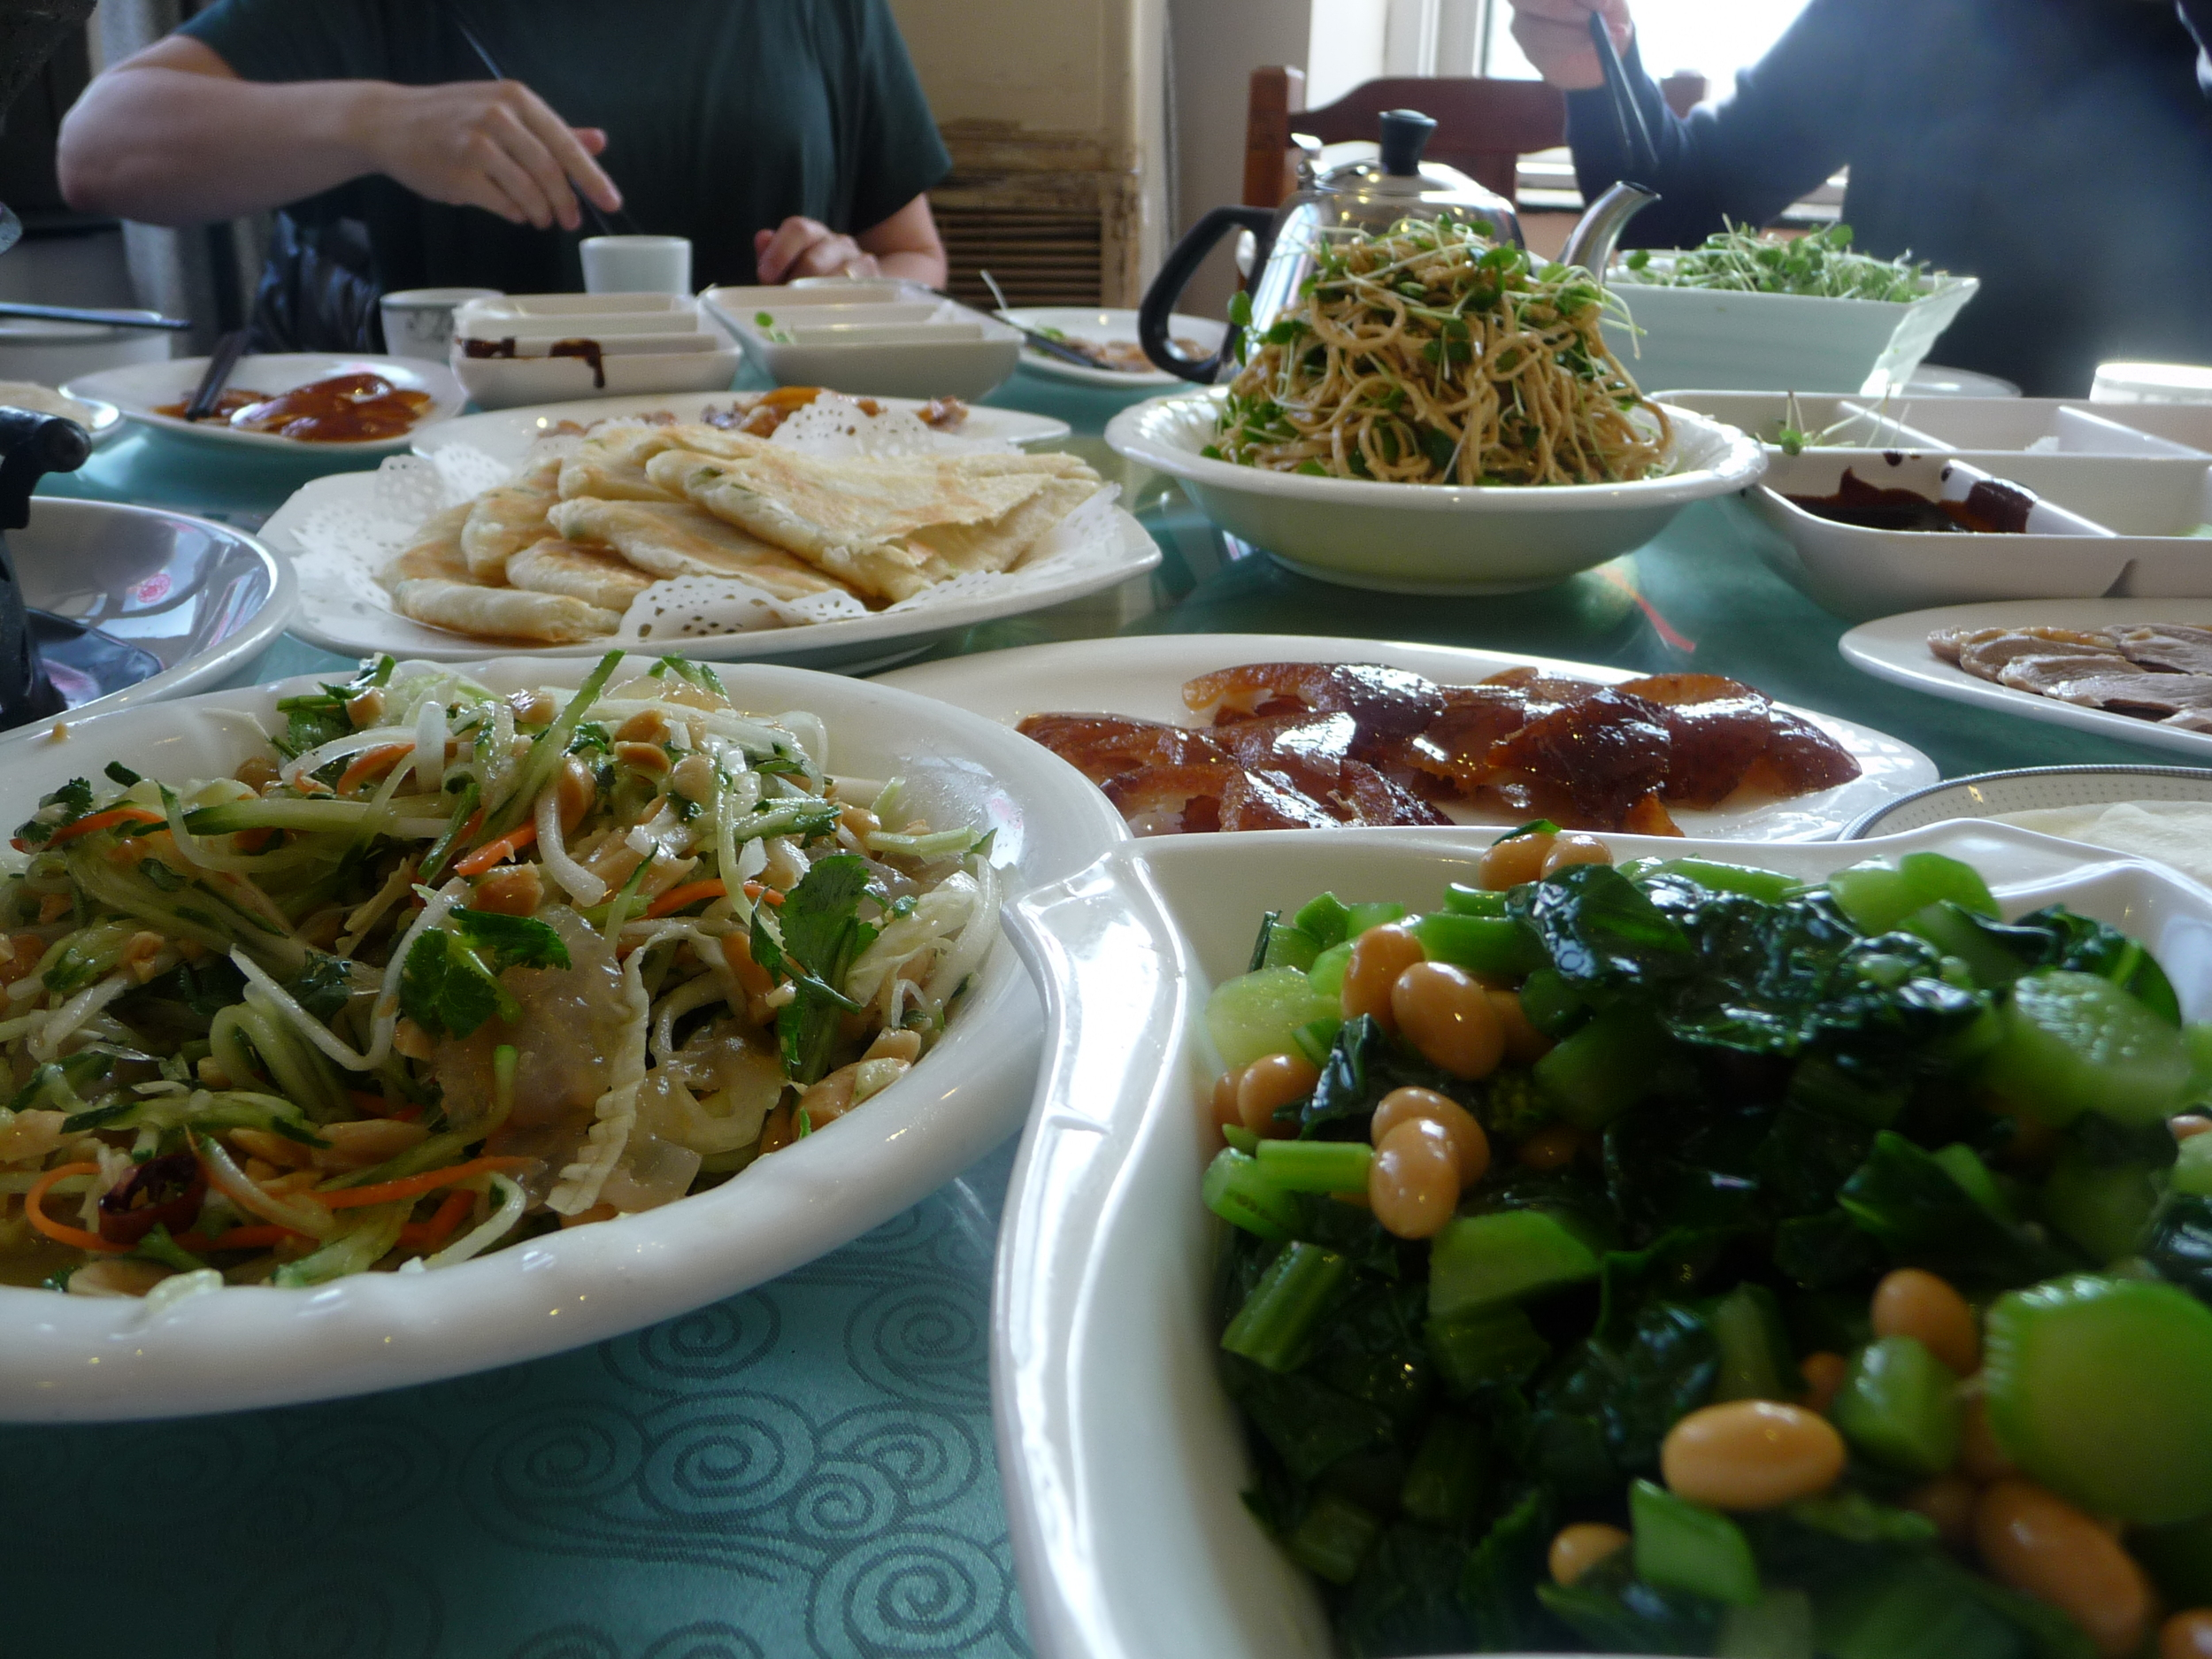 Peking duck and vegetable side dishes